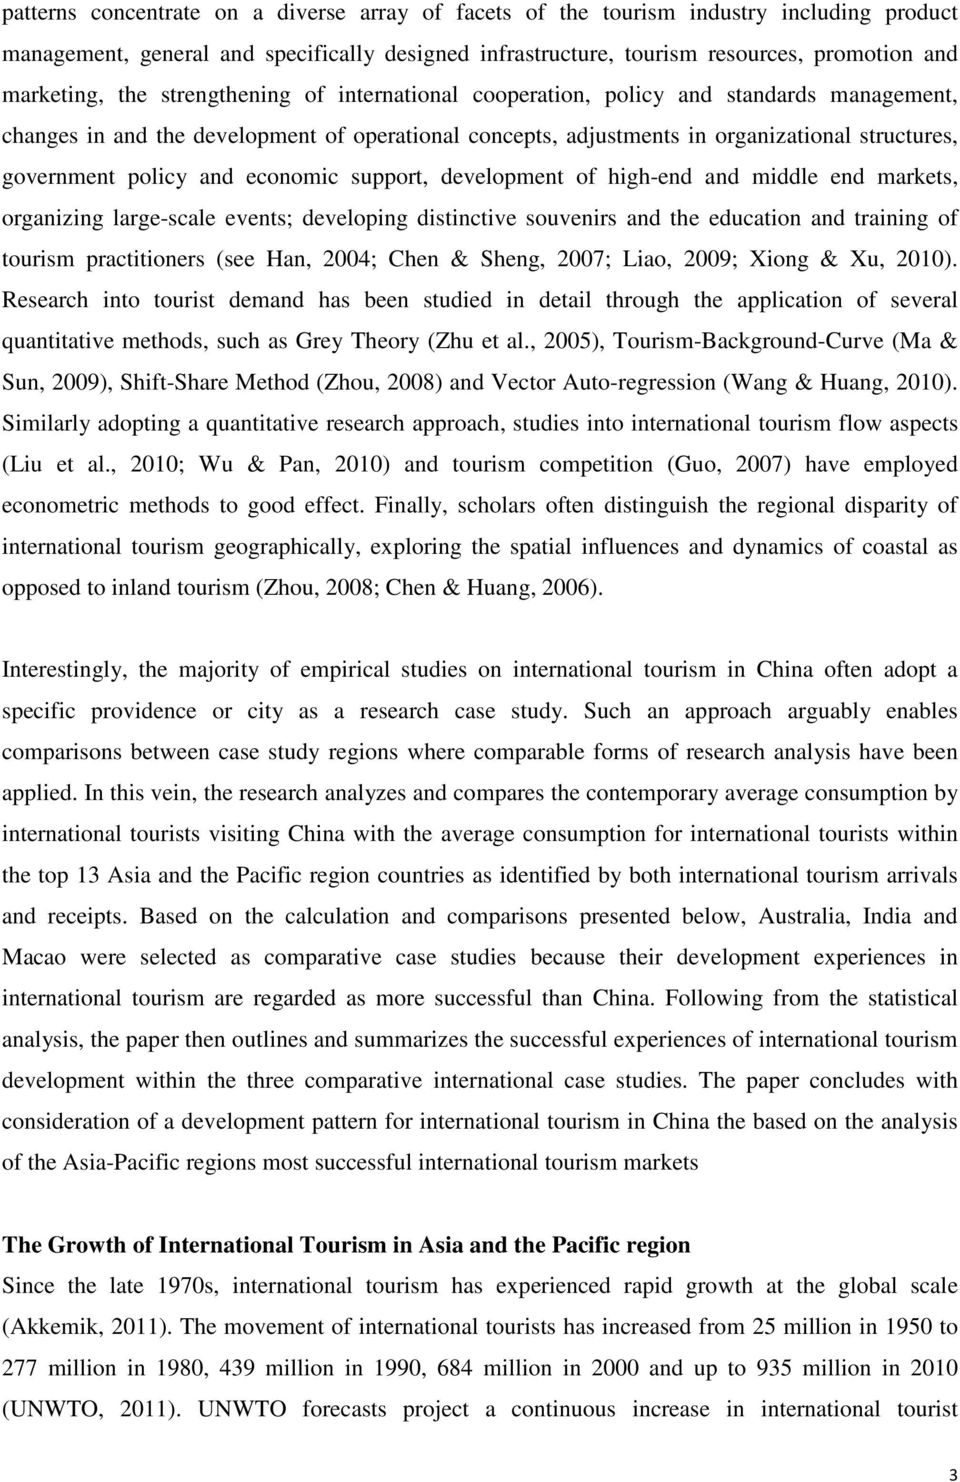 and economic support, development of high-end and middle end markets, organizing large-scale events; developing distinctive souvenirs and the education and training of tourism practitioners (see Han,